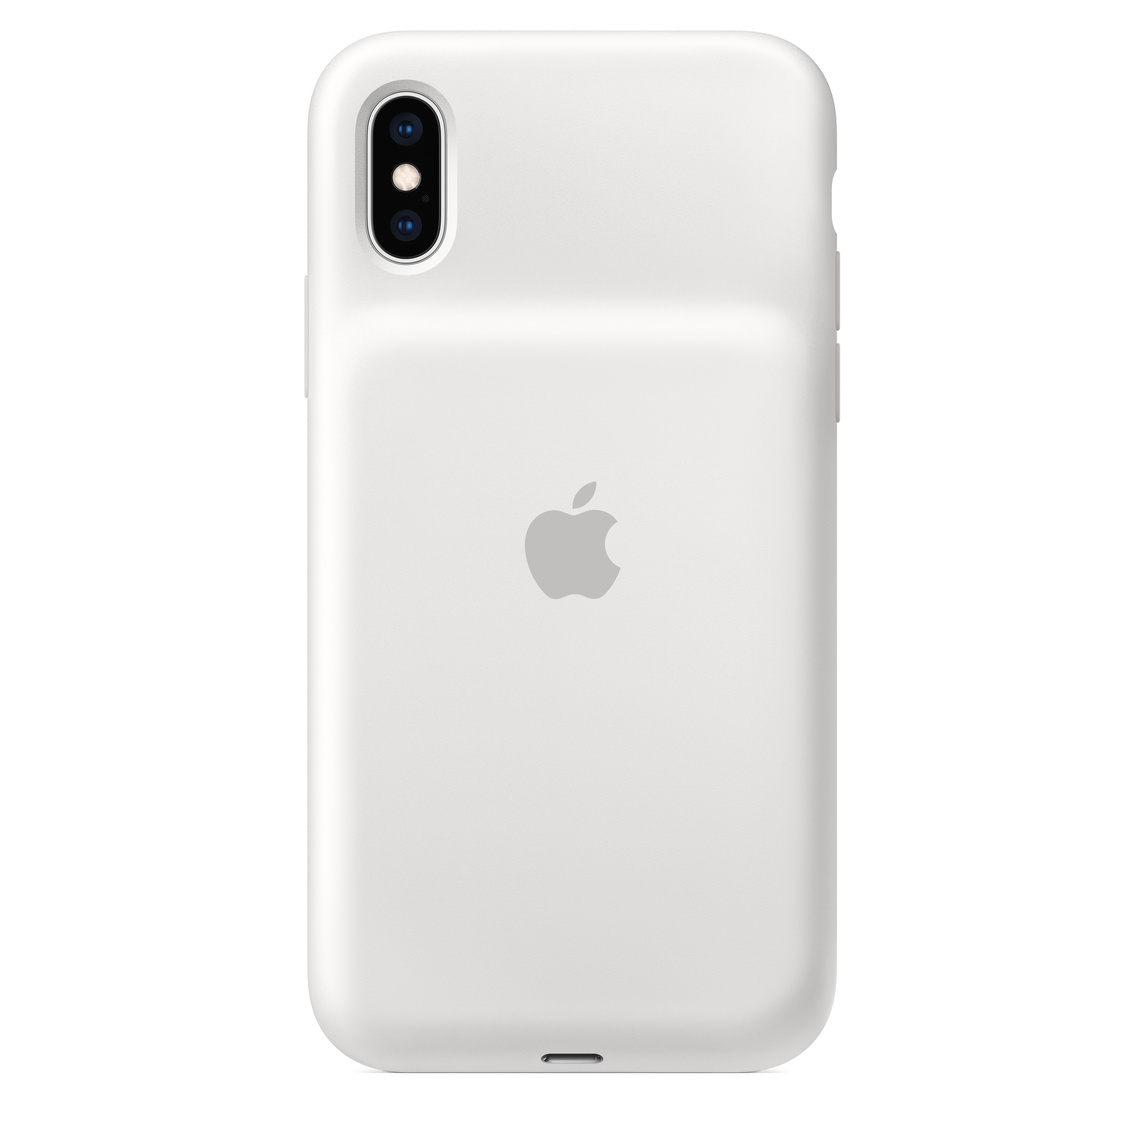 best website c9c92 63444 iPhone XS Smart Battery Case - White